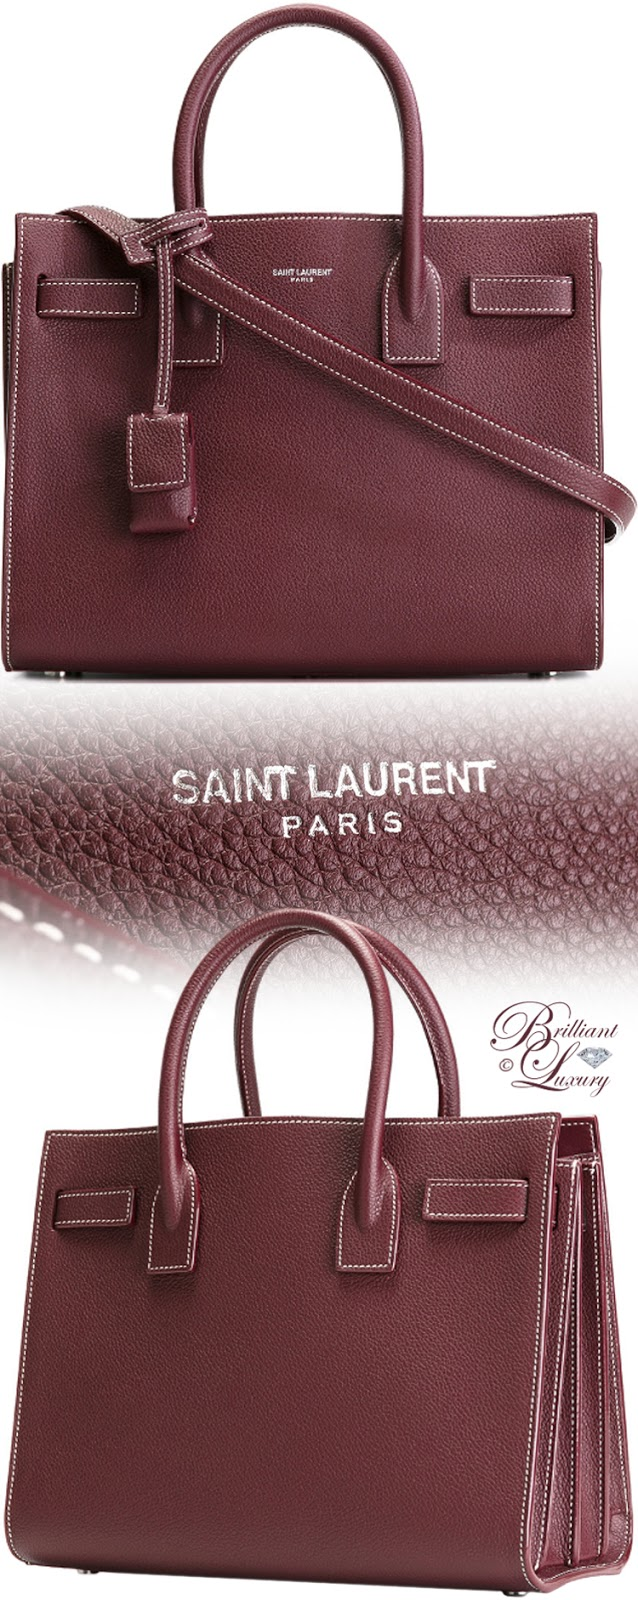 Brilliant Luxury ♦ Saint Laurent Small Sac de Jour Tote